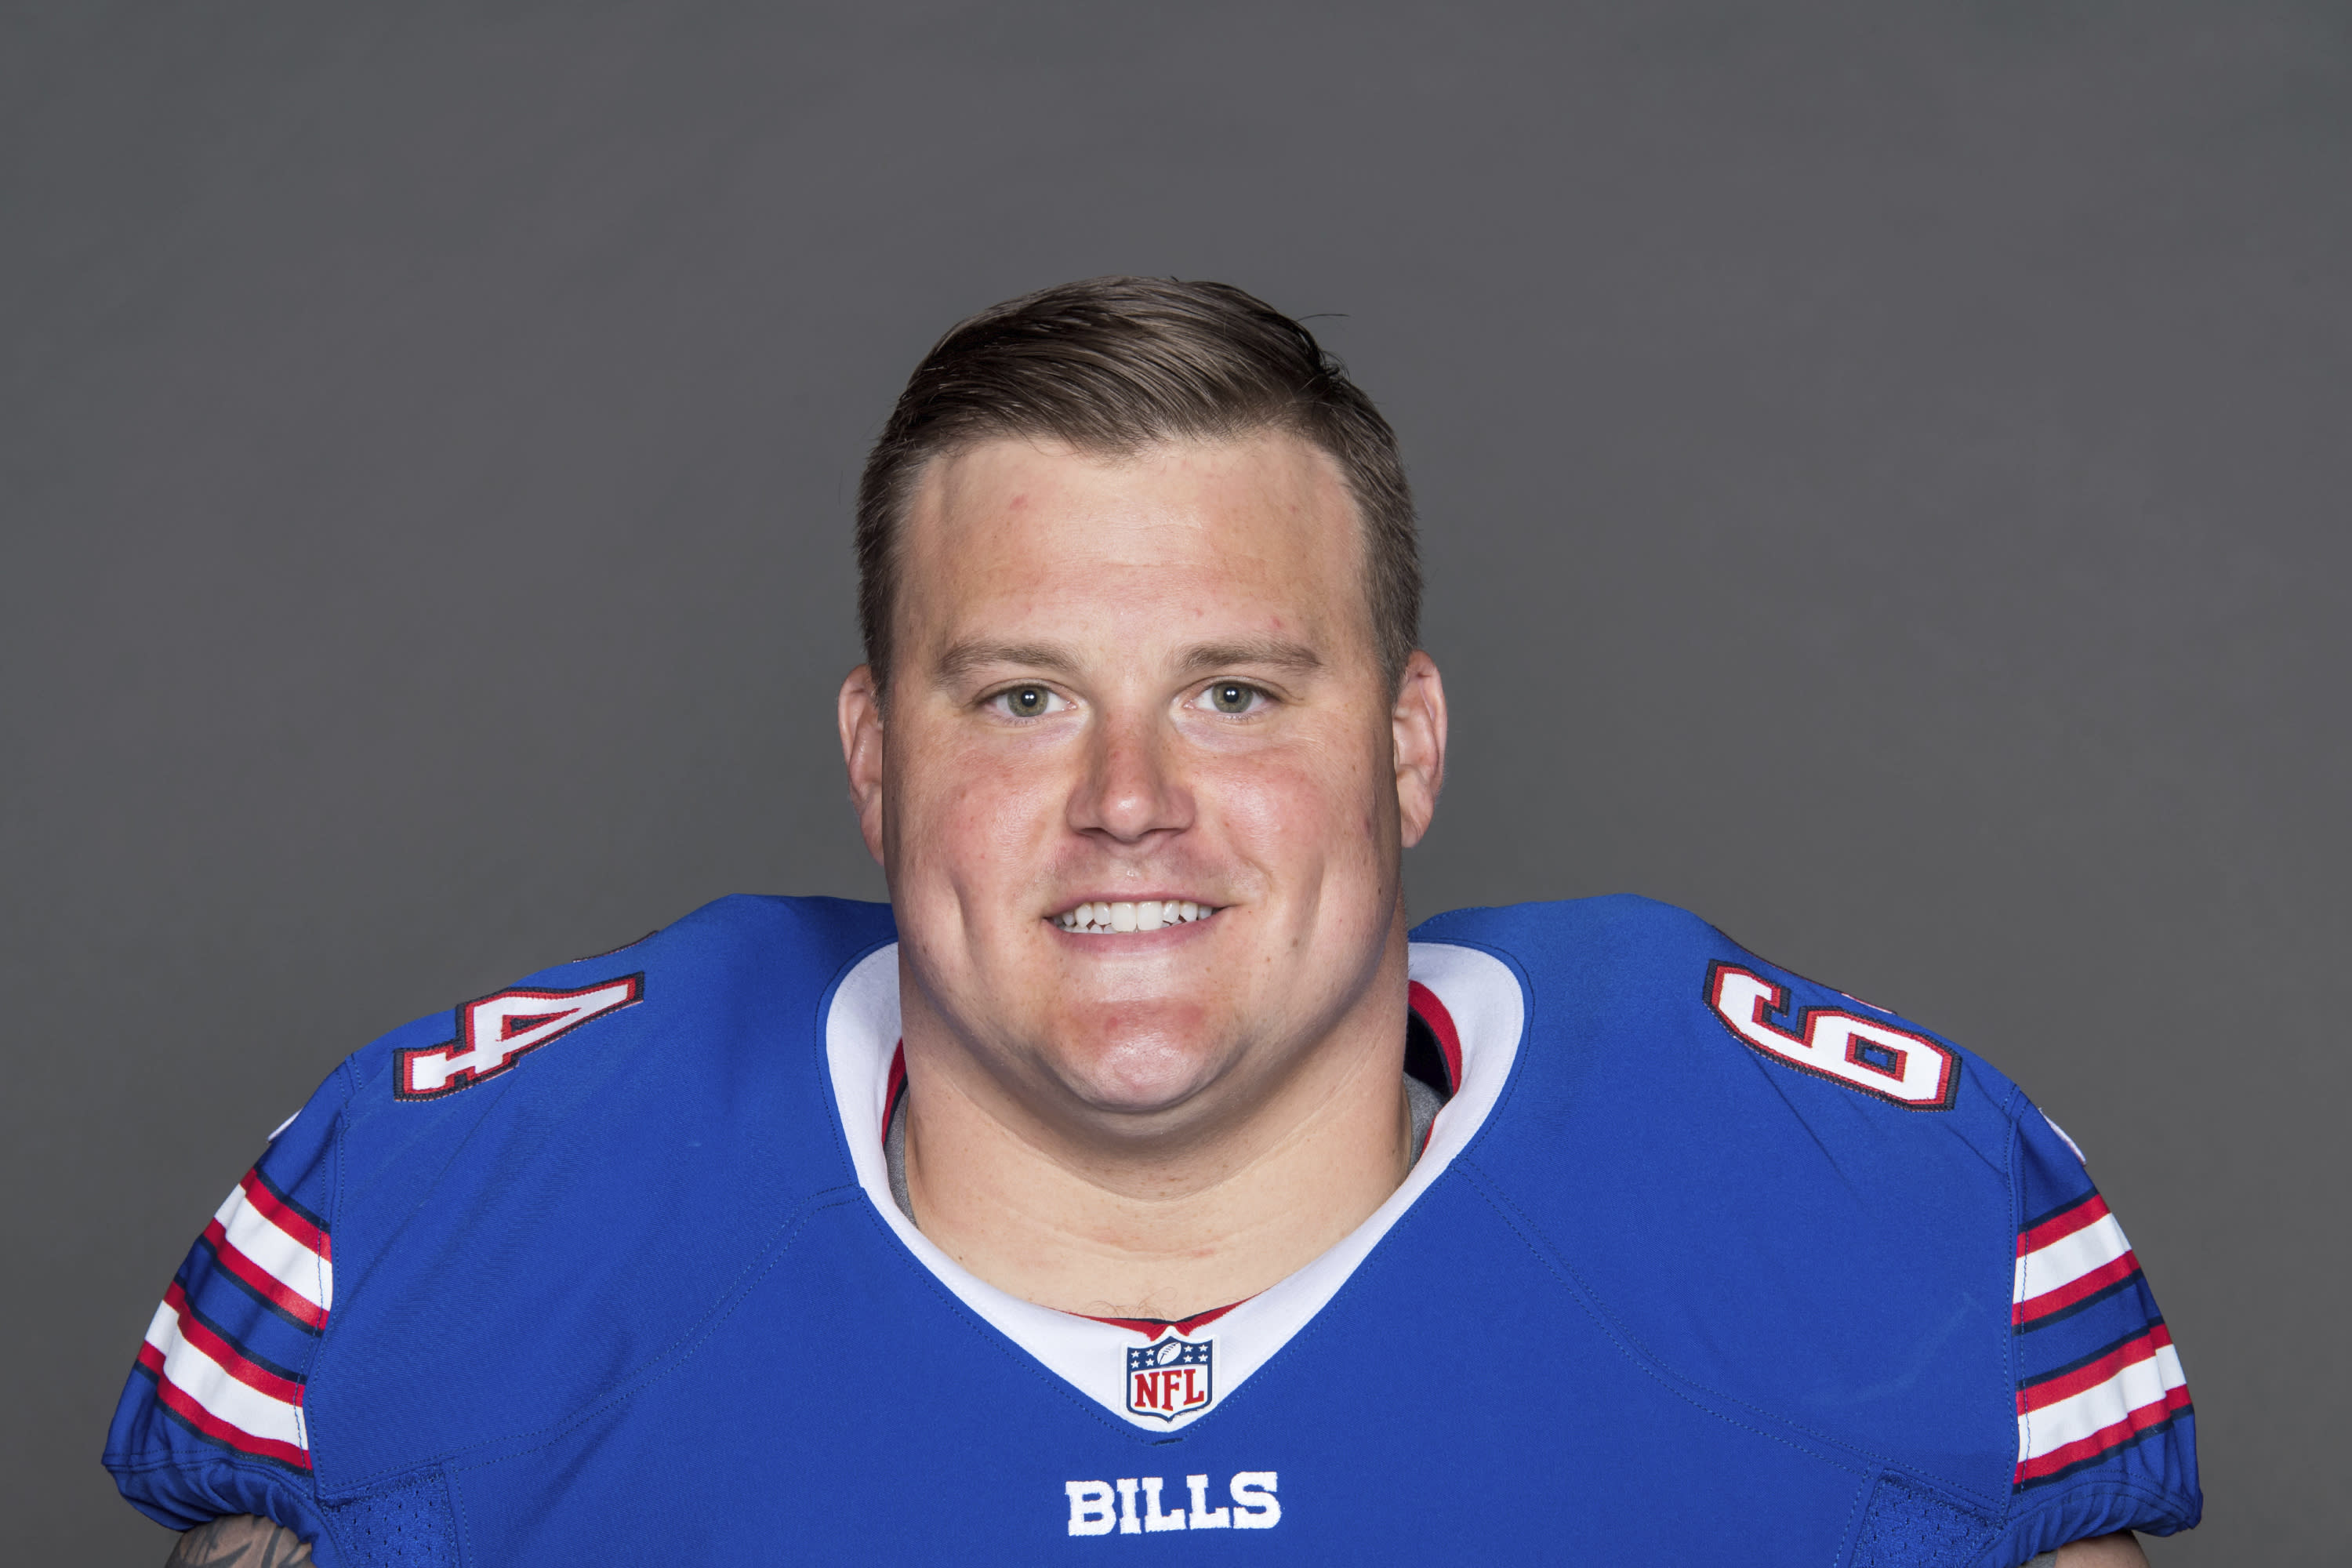 Richie Incognito reportedly threw dumbbell at gym patron, held for mental eval